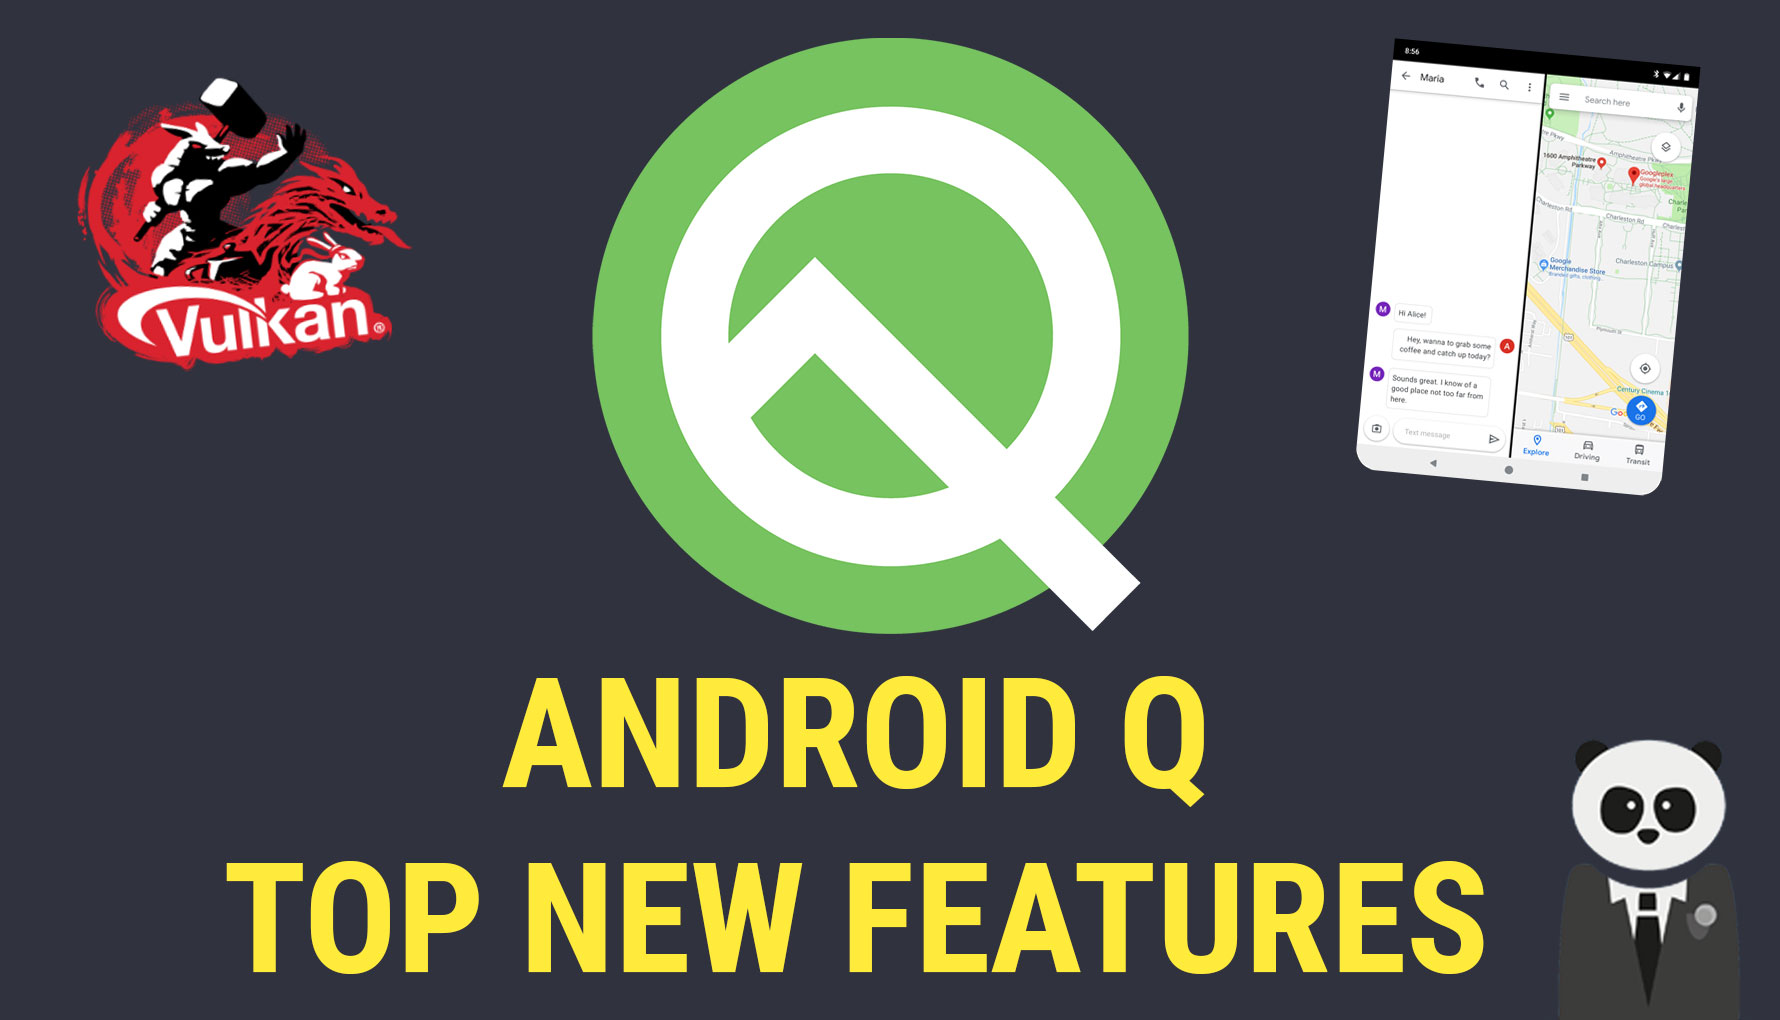 Android Q Top New Features (as of Beta 2) and what they mean for Developers